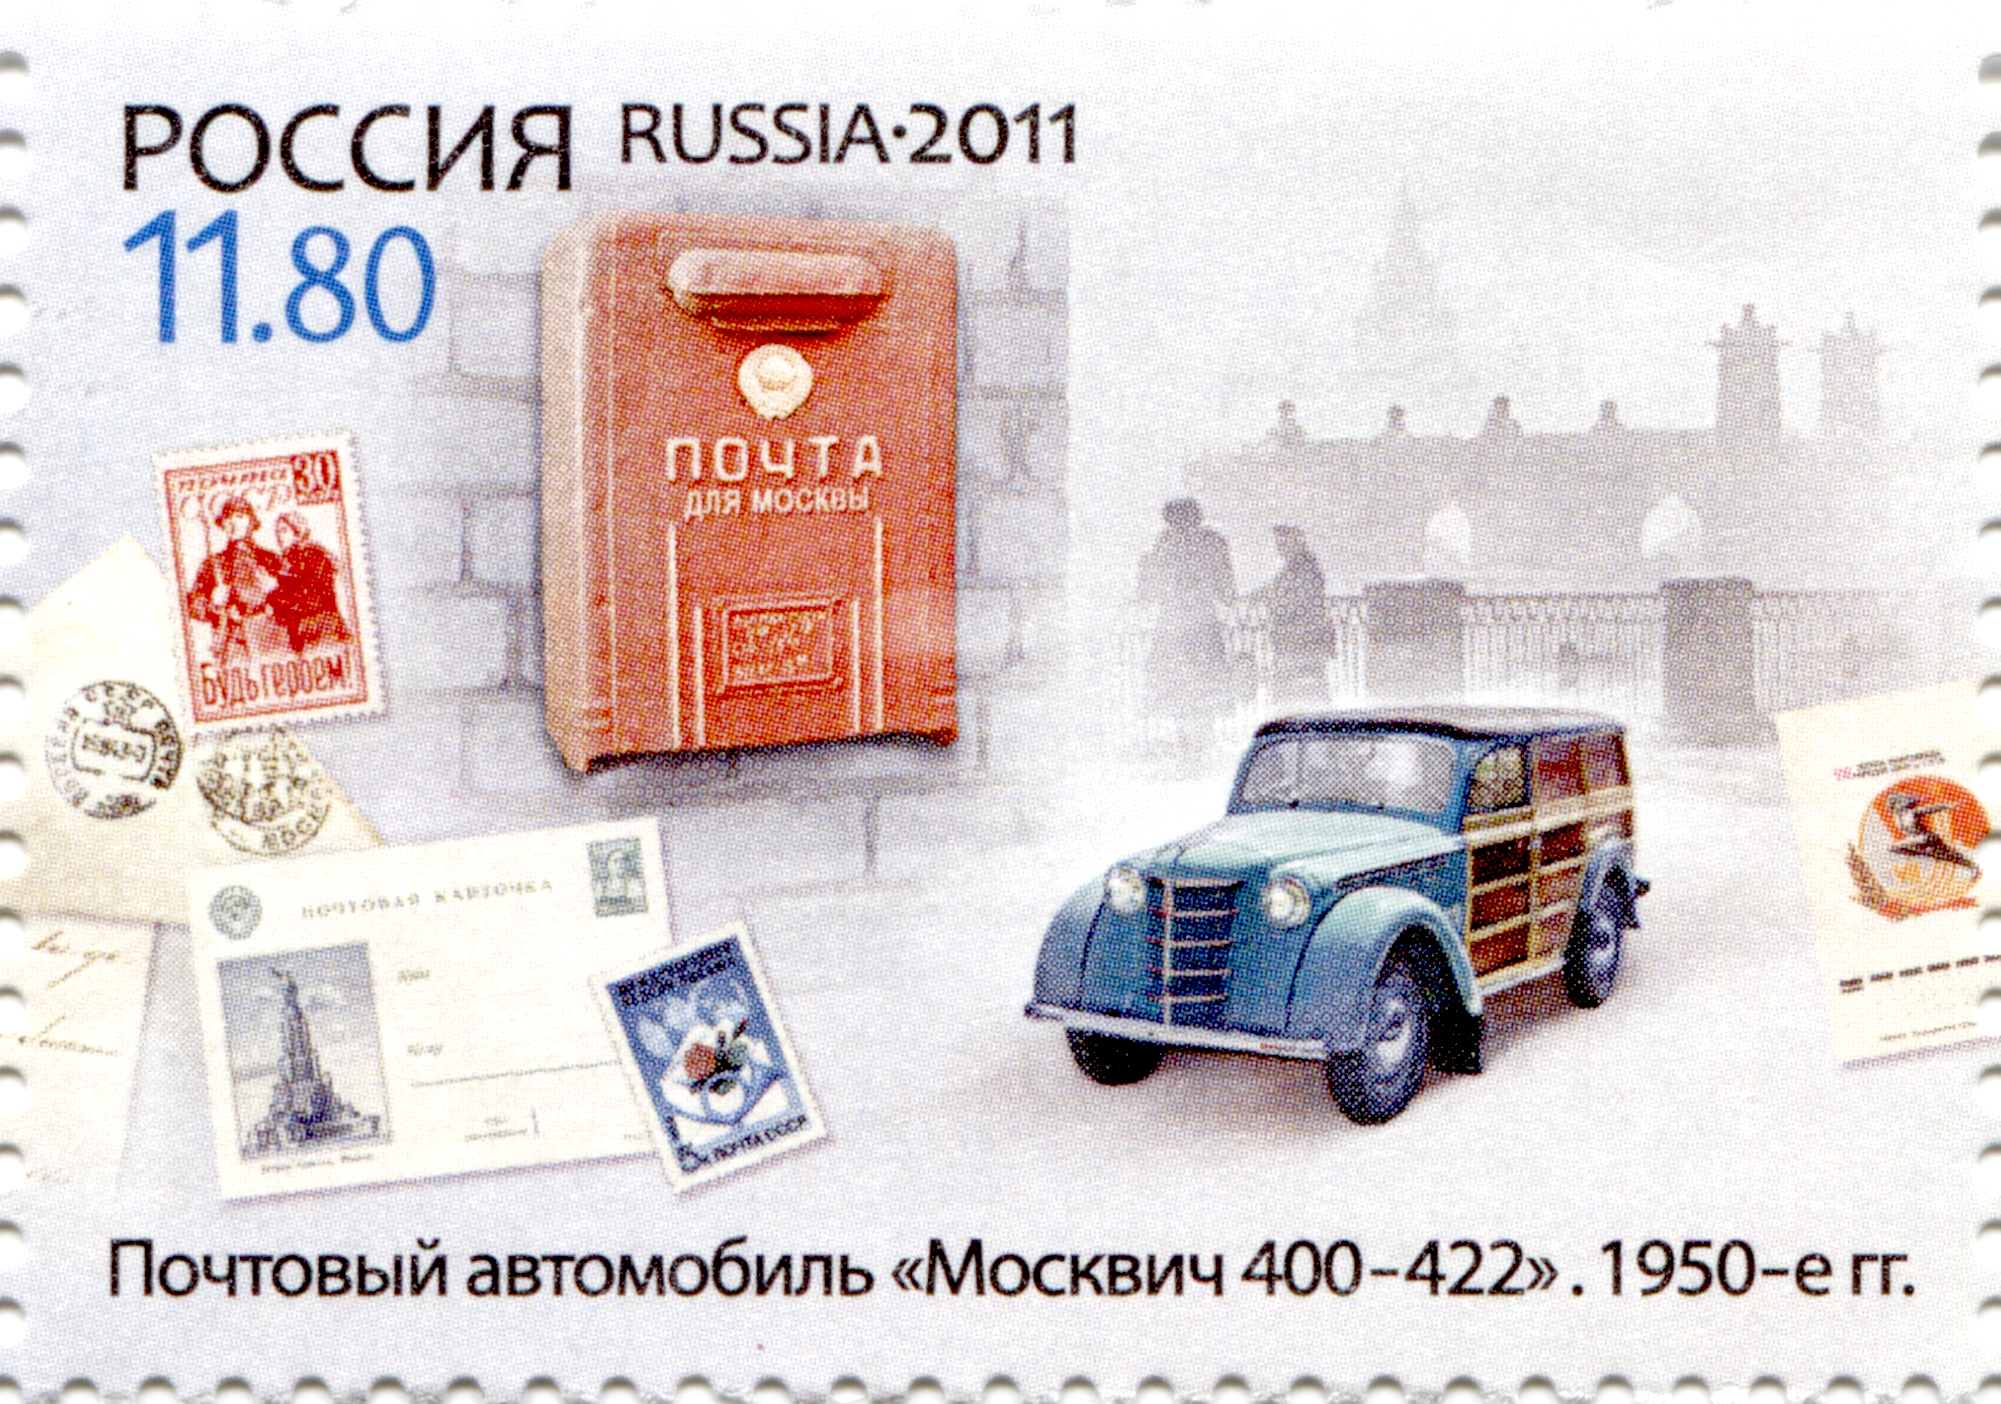 Moskvitch 400 photo - 2